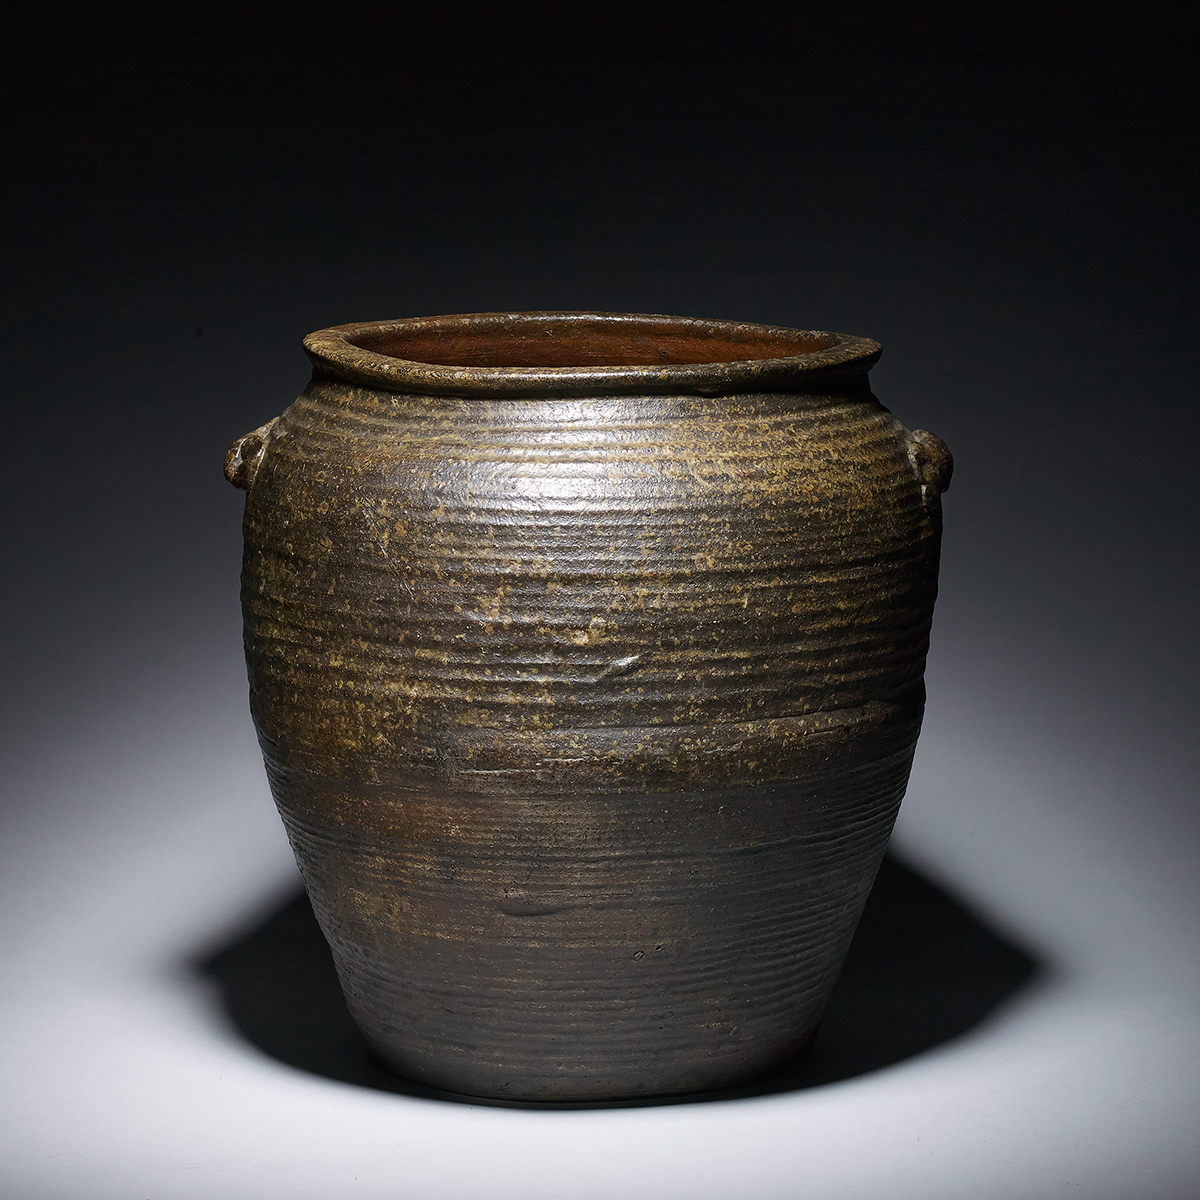 Bizen Ceramic Jar - Japanese Antique Ceramic